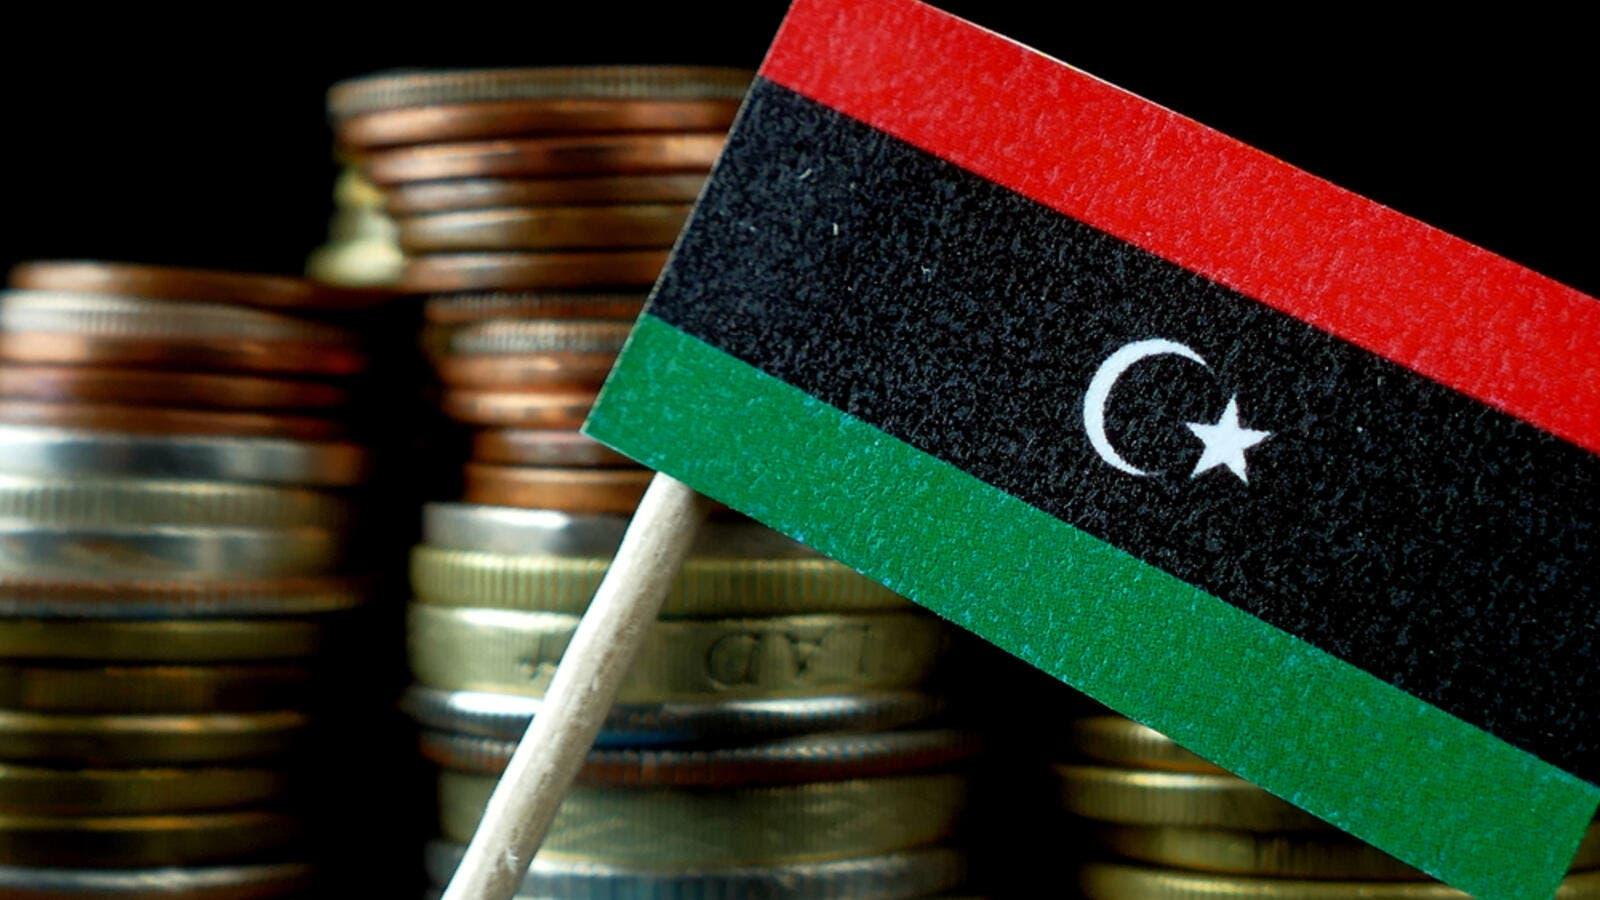 Libya: Revenues Of Ports Plummet Due To Conflict